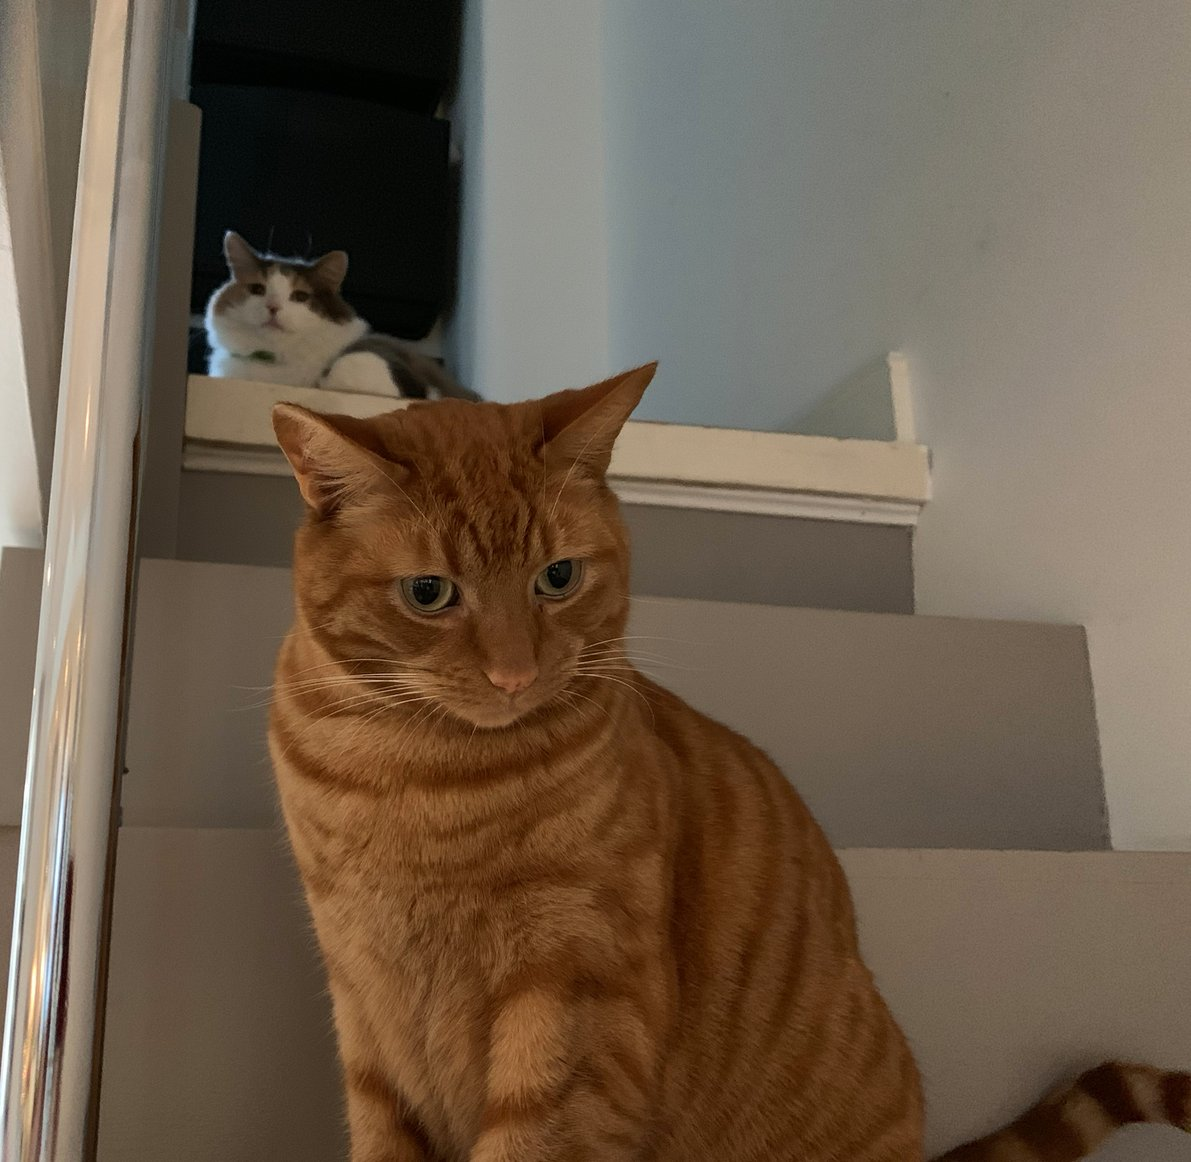 Two of my cats have formed a retro 80s electro-pop duo. Here's their first album cover.